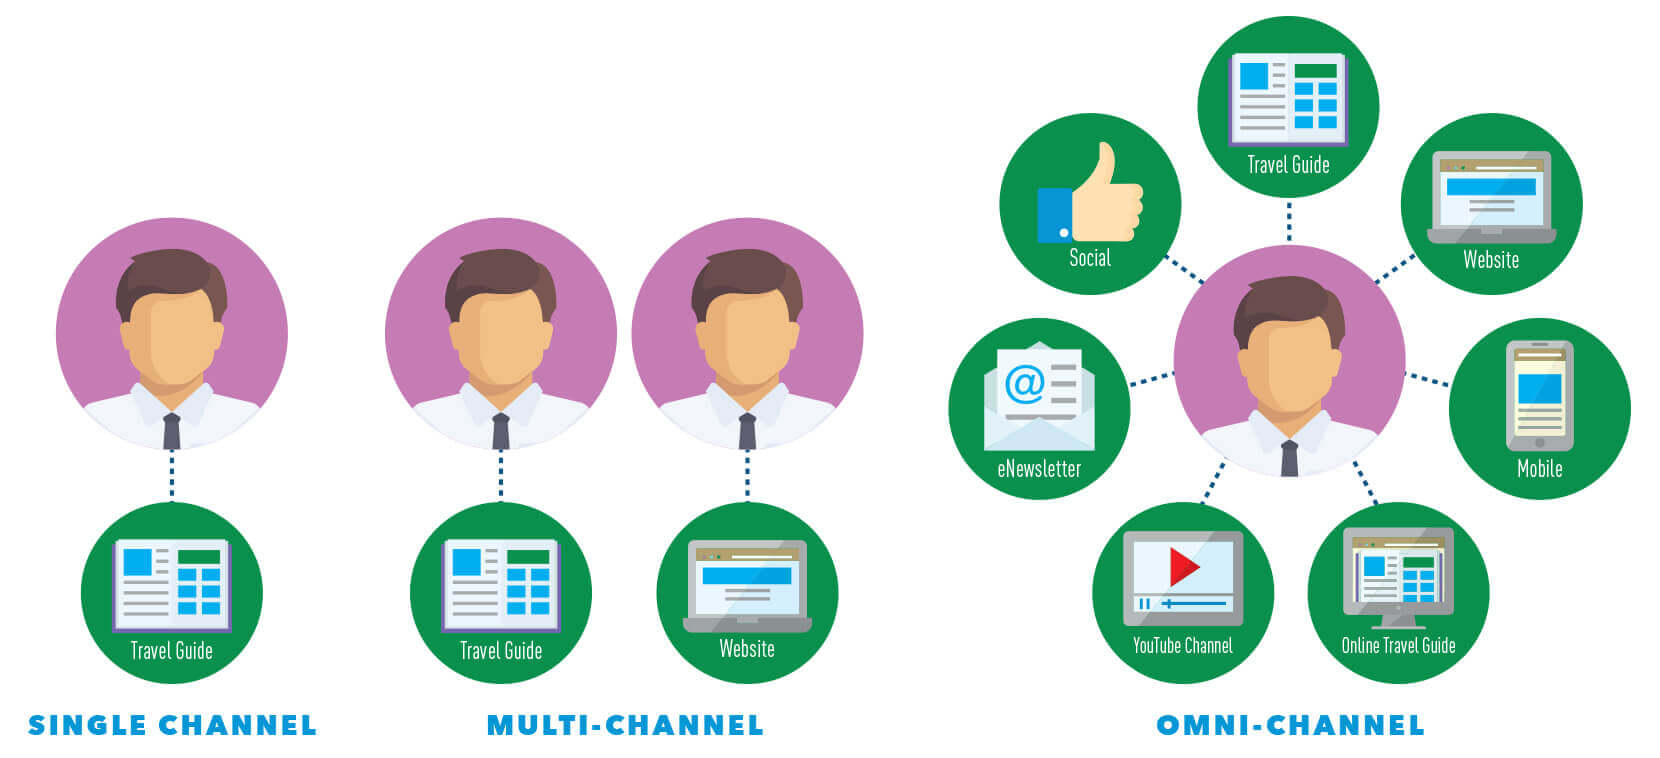 Omni-channel Approach